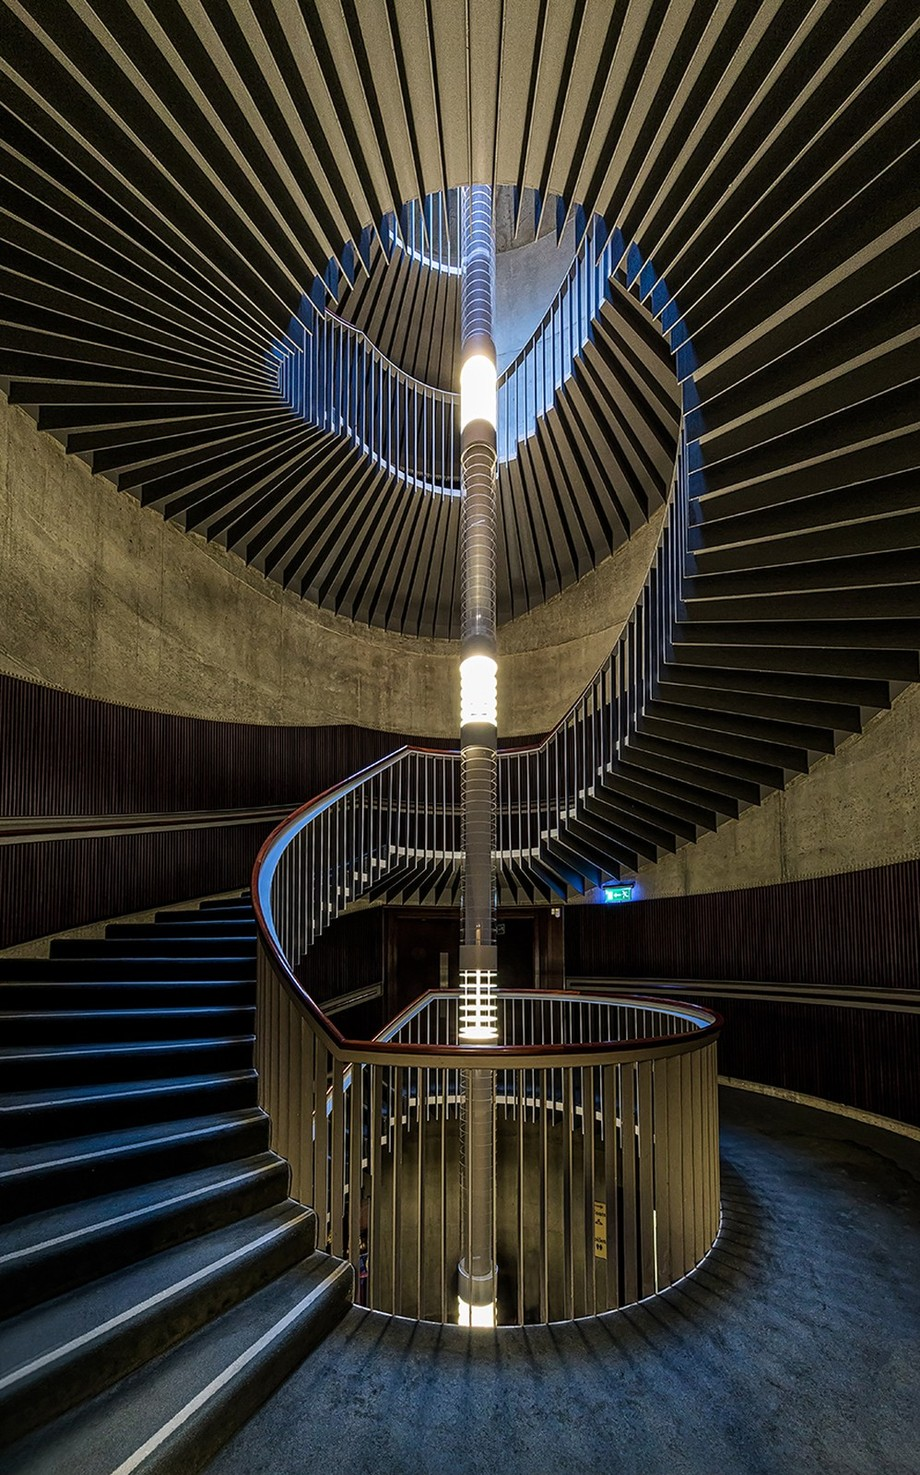 Vortex by shahbazmajeed - Stairways Photo Contest